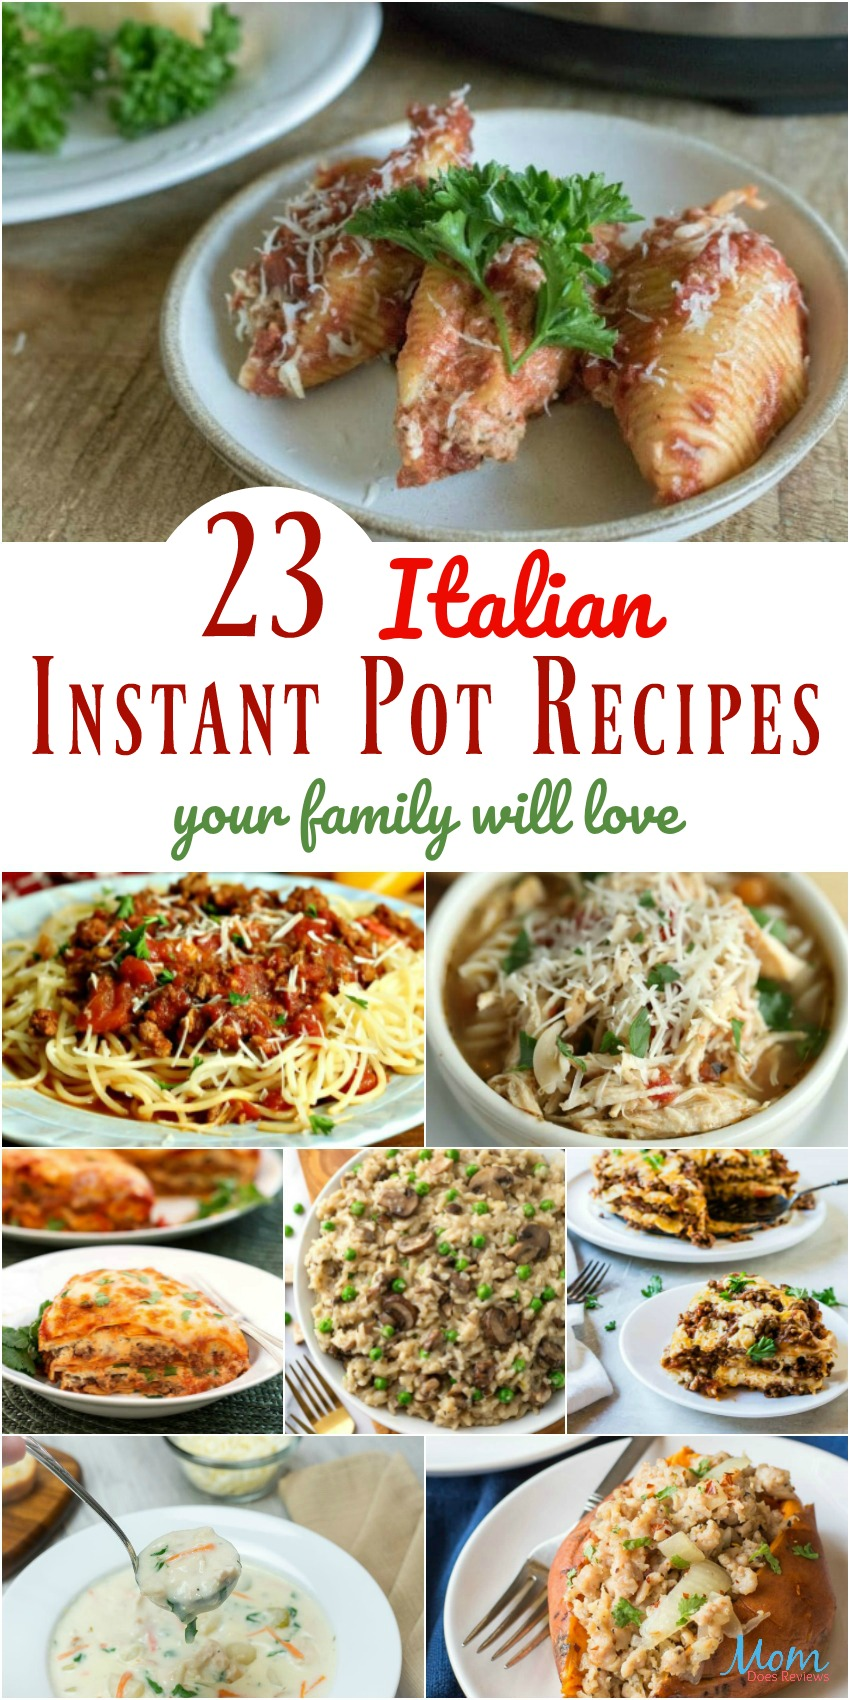 23 Easy Italian Instant Pot Recipes your Family Will Love #recipes #instantpot #pasta #getinmybelly #foodie